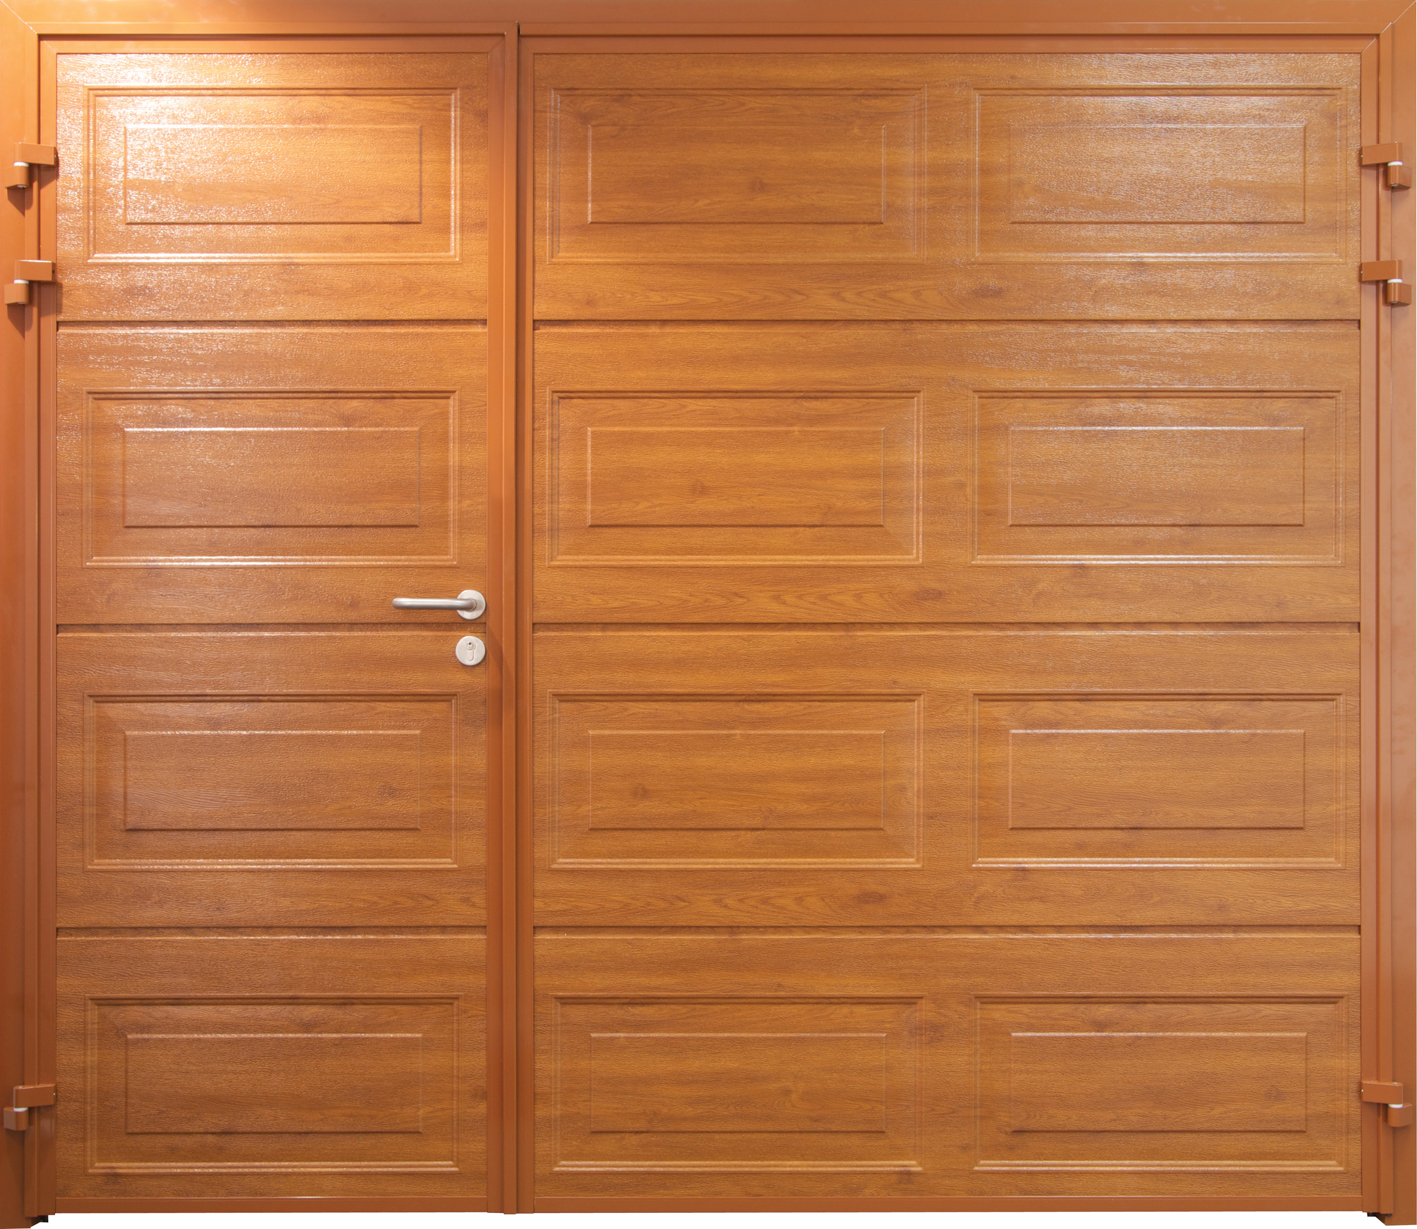 1229 #B86213  Horizontal Side Hinged Garage Doors In Golden Oak Laminate Finish pic Horizontal Garage Doors 37811417